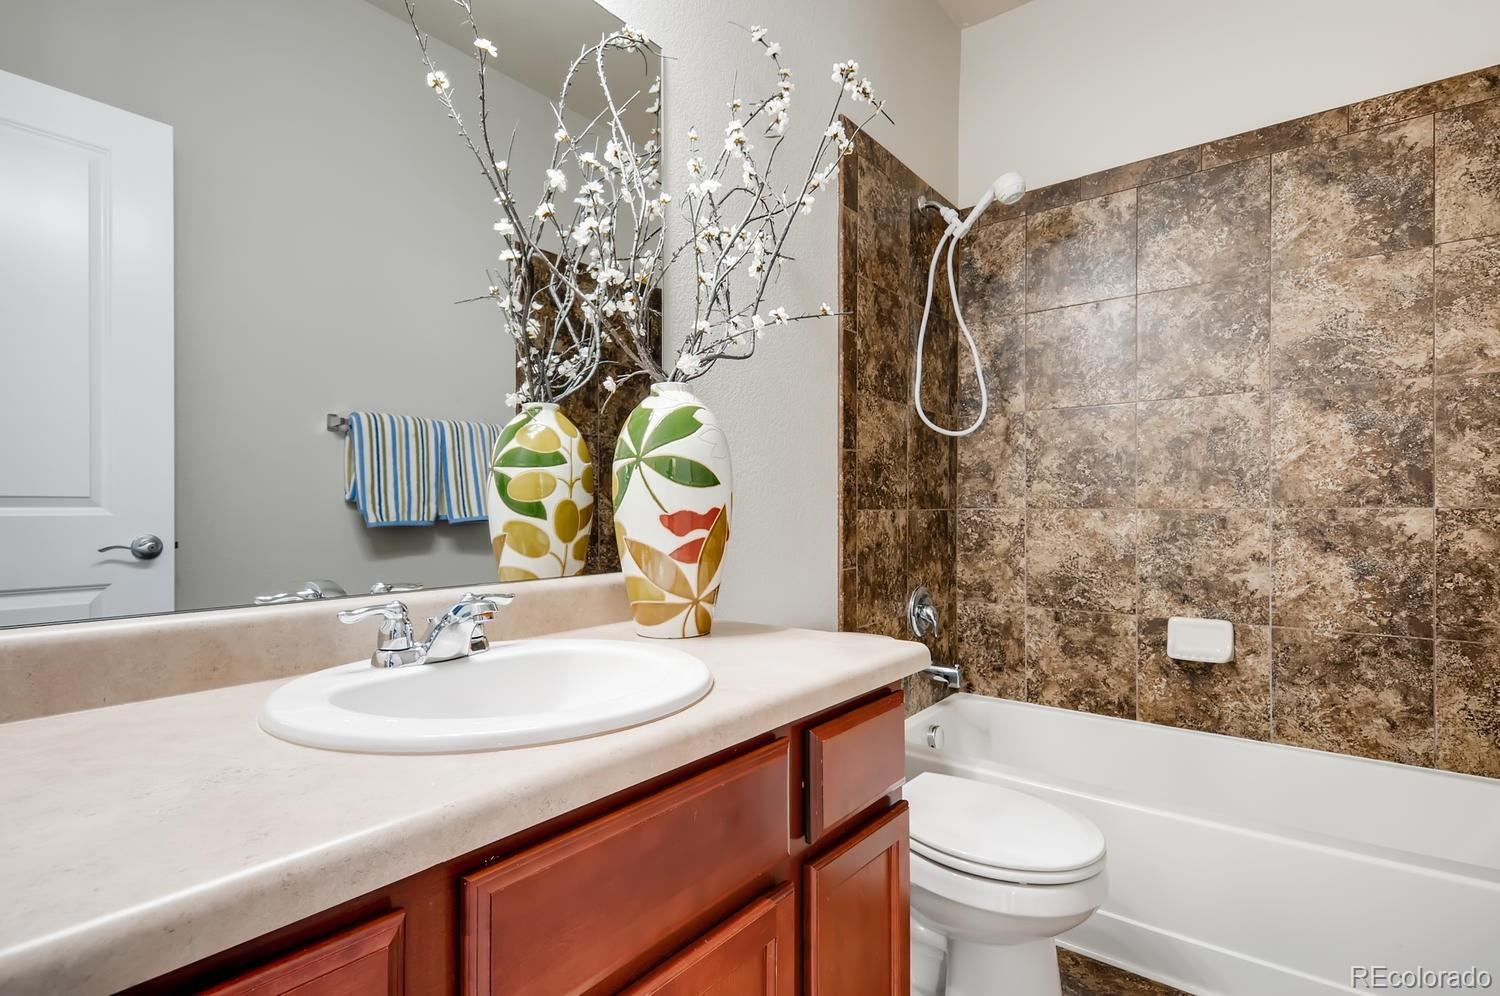 MLS# 7221066 - 24 - 6288 Orchard Court #B, Arvada, CO 80403